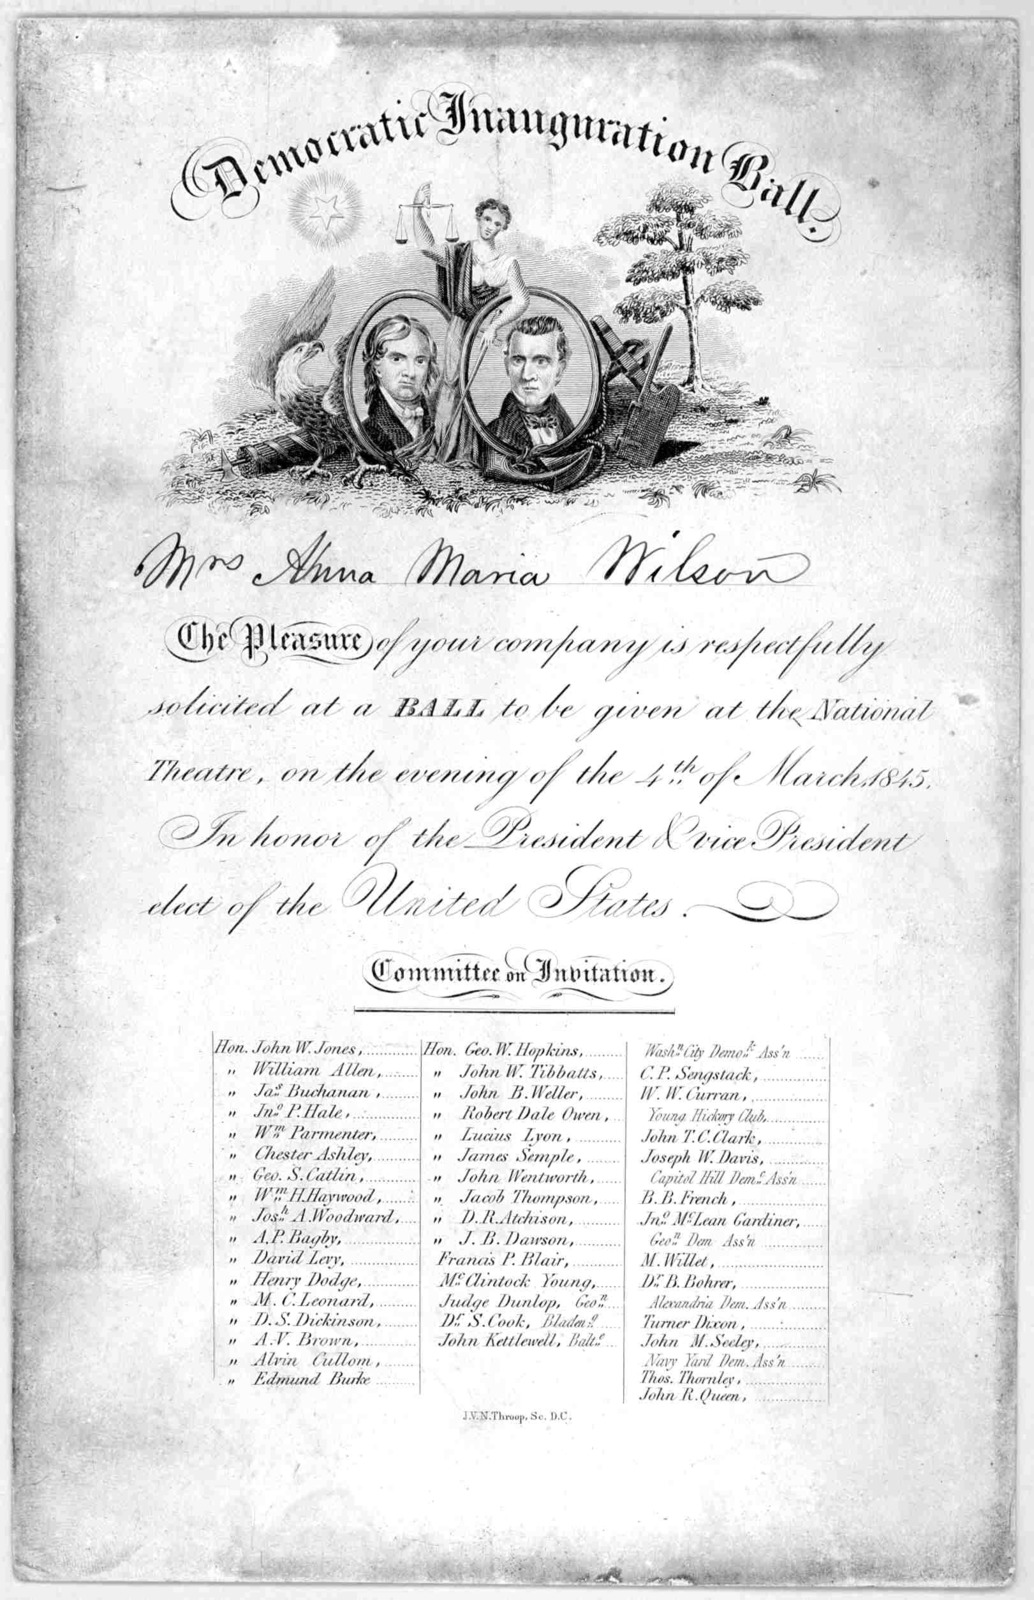 Democratic Inauguration Ball. [Mrs. Anna Maria Wilson] The Pleasure of your company is respectfully solicited at a BALL to be given at the National Theatre, on the evening of the 4th of March, 1845. In honor of the President and vice President e